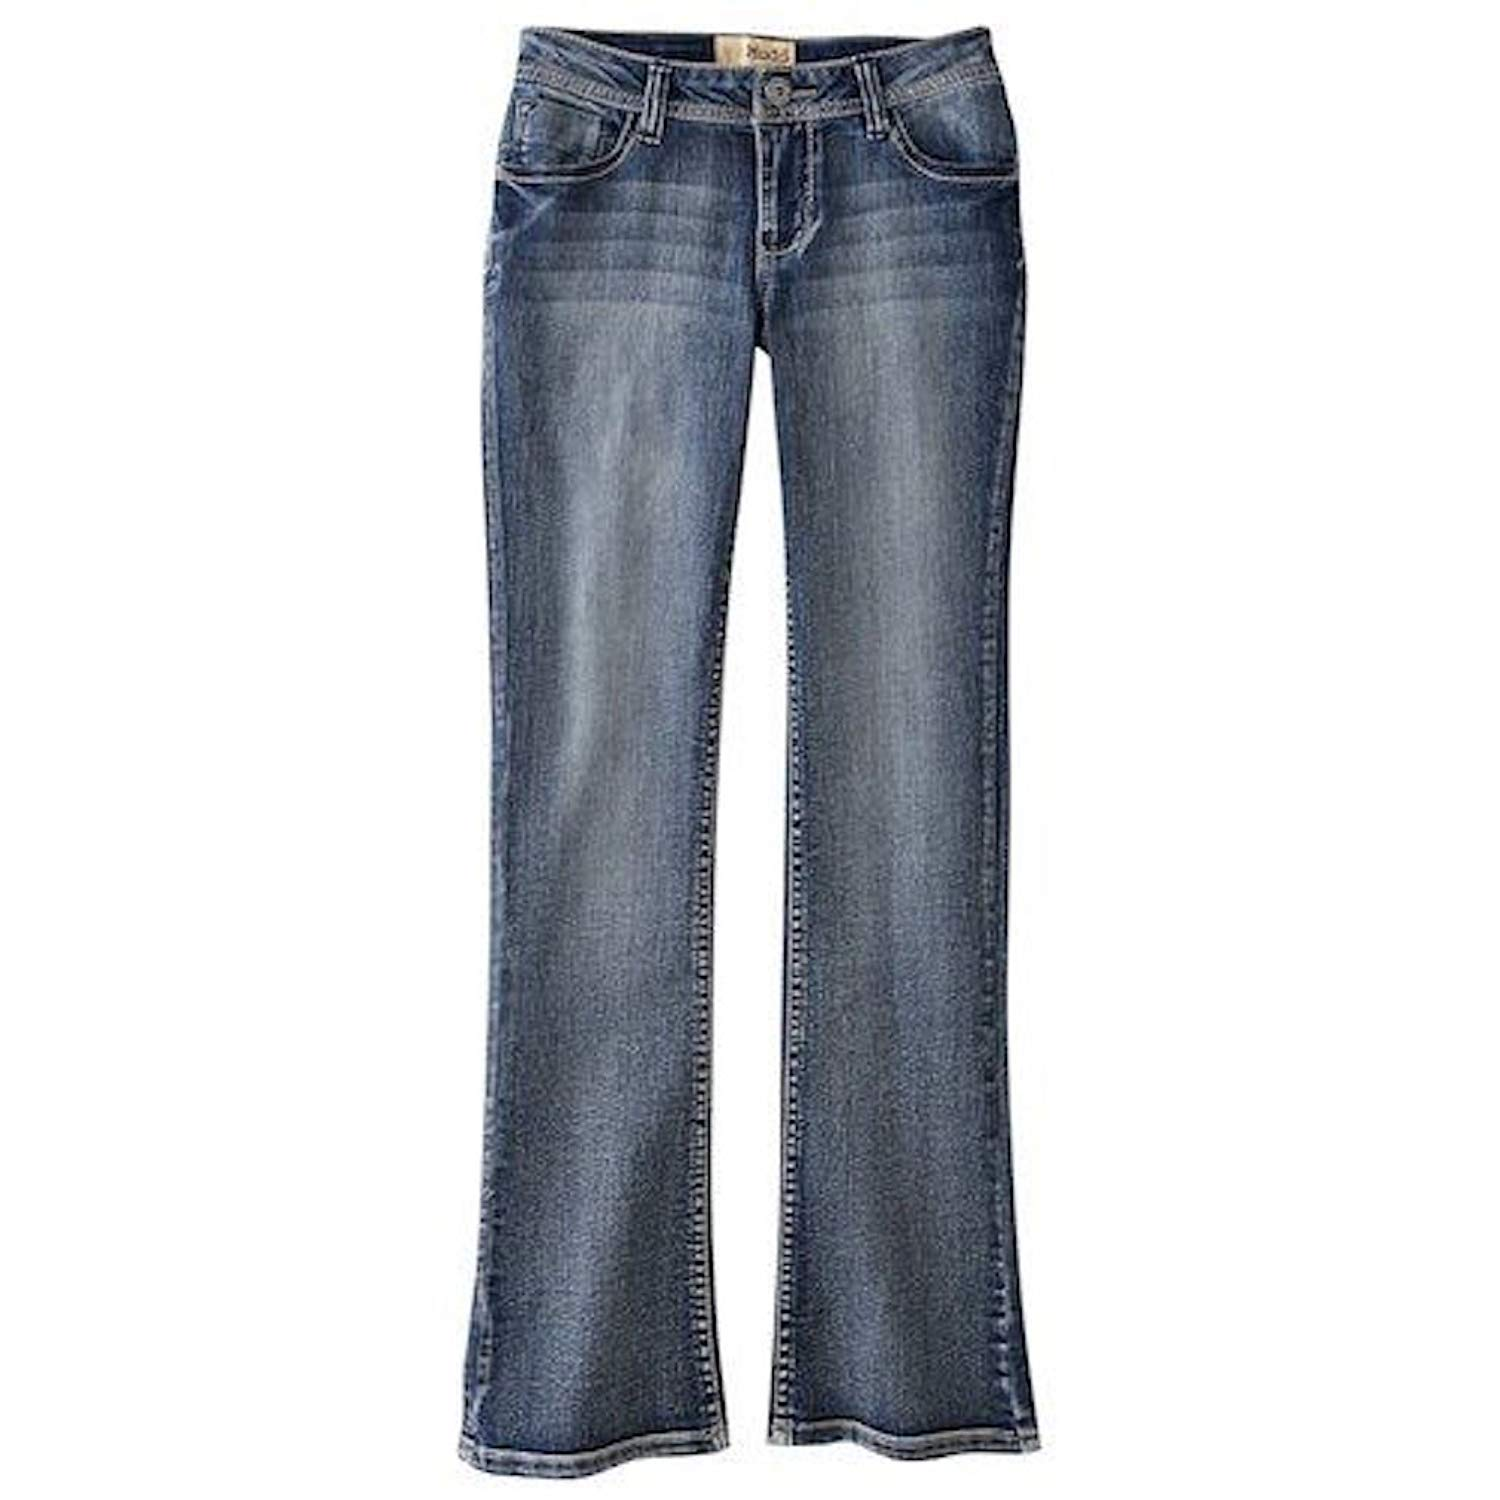 59c53d61f68 Get Quotations · Mudd Girls Bootcut Jeans Size 6R MSRP  38 Basic Denim  Light Wash